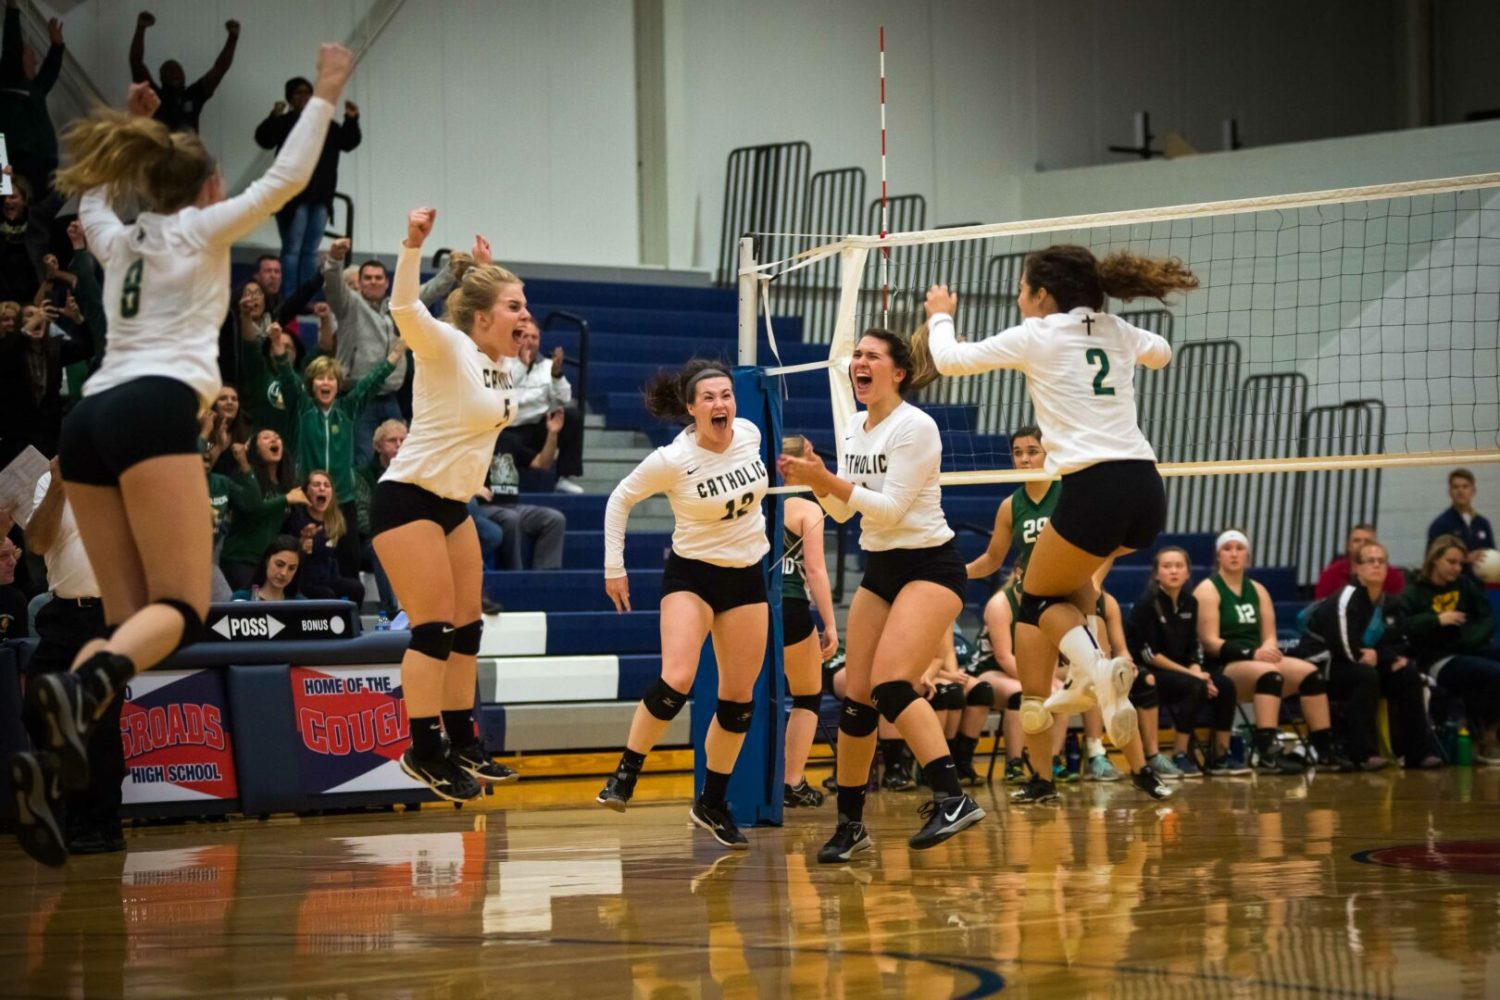 Muskegon Catholic volleyball team rallies for win, advances to regional finals